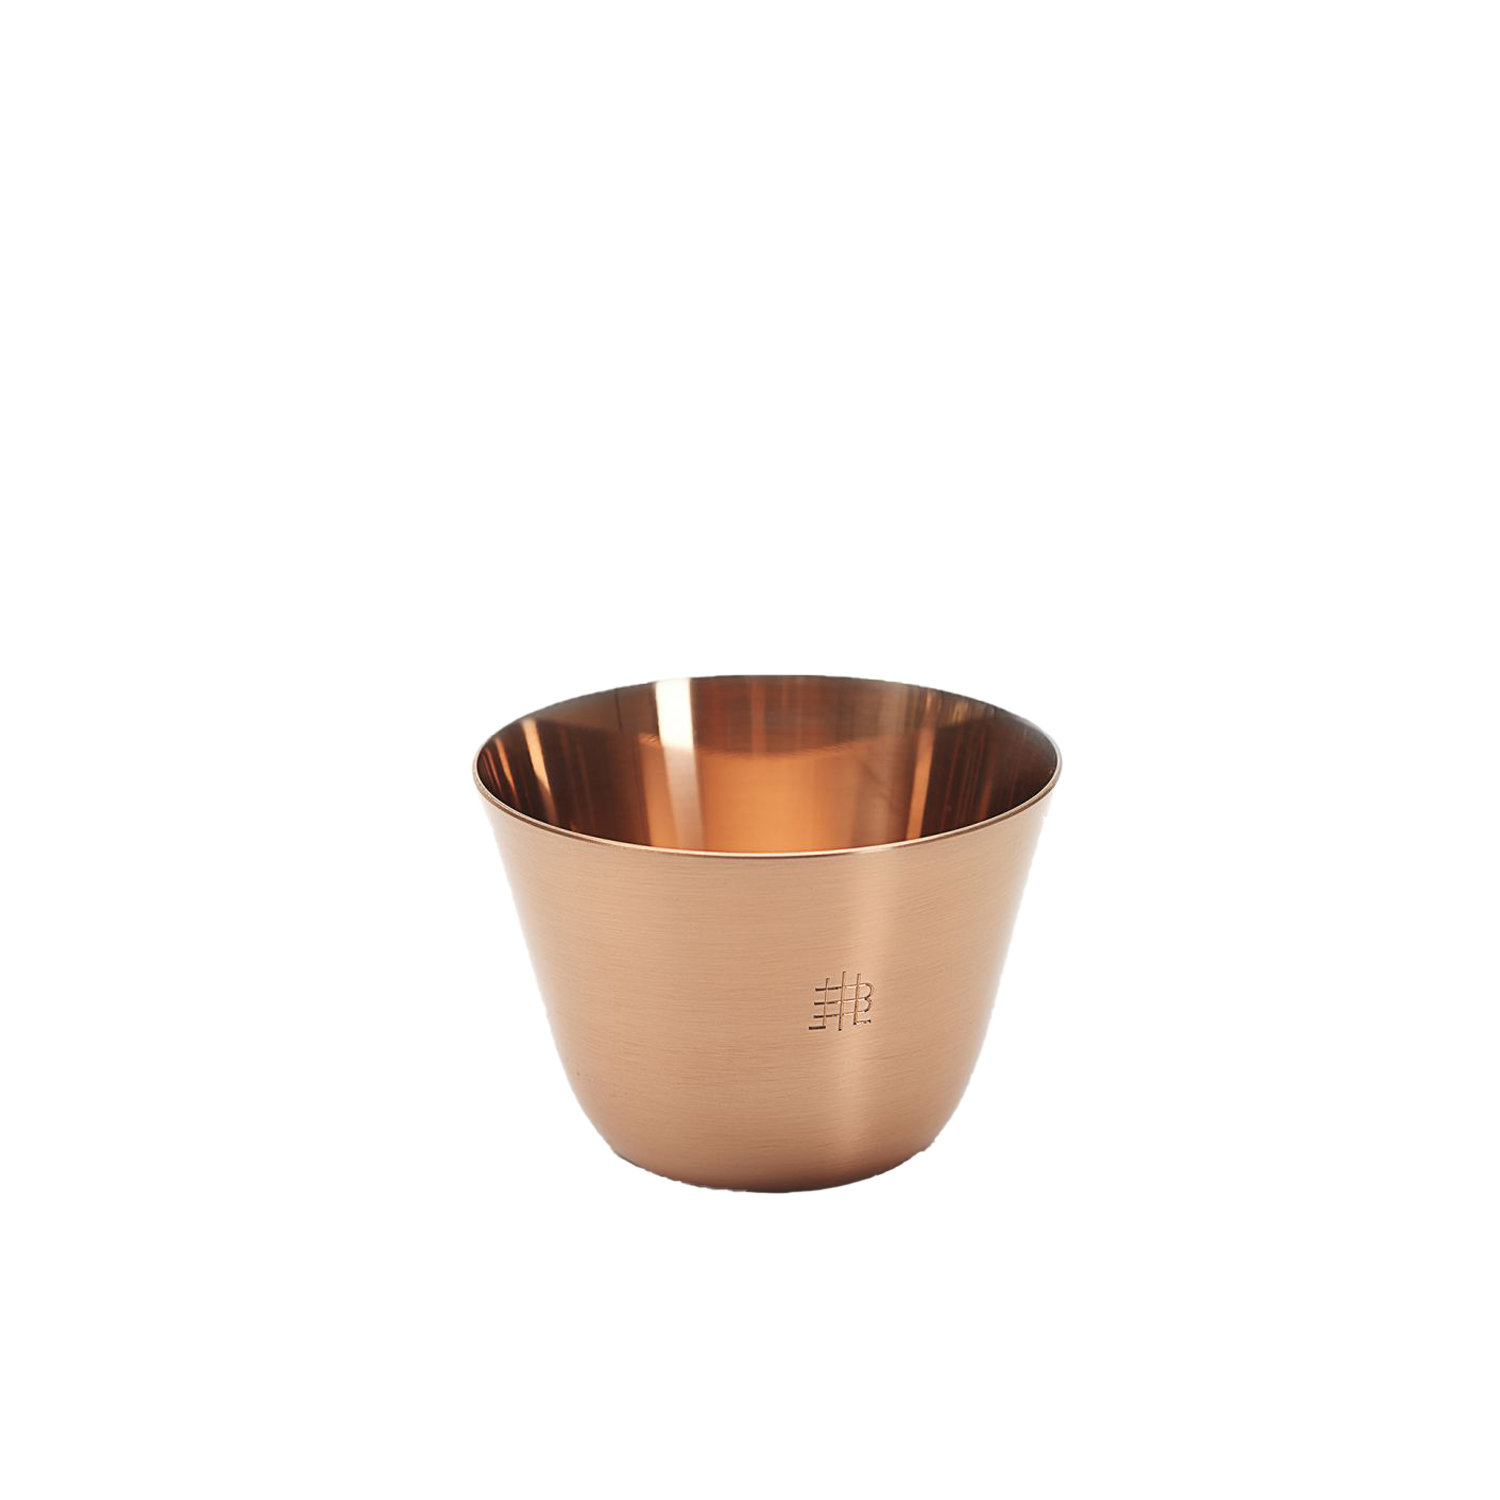 Still Copper Cup - Set of 6 - What are the true luxury goods of today? For us, it's not glitter, gold, or heavy cut crystal vases. People of today need carefully designed and well-crafted objects. Pure drinking water is a treasure and this drinking set – STILL – reminds us to cherish and enjoy our world's most important resource. Formafantasma didn't come back with a single piece, but instead with a series that tells an evocative story. | Matter of Stuff